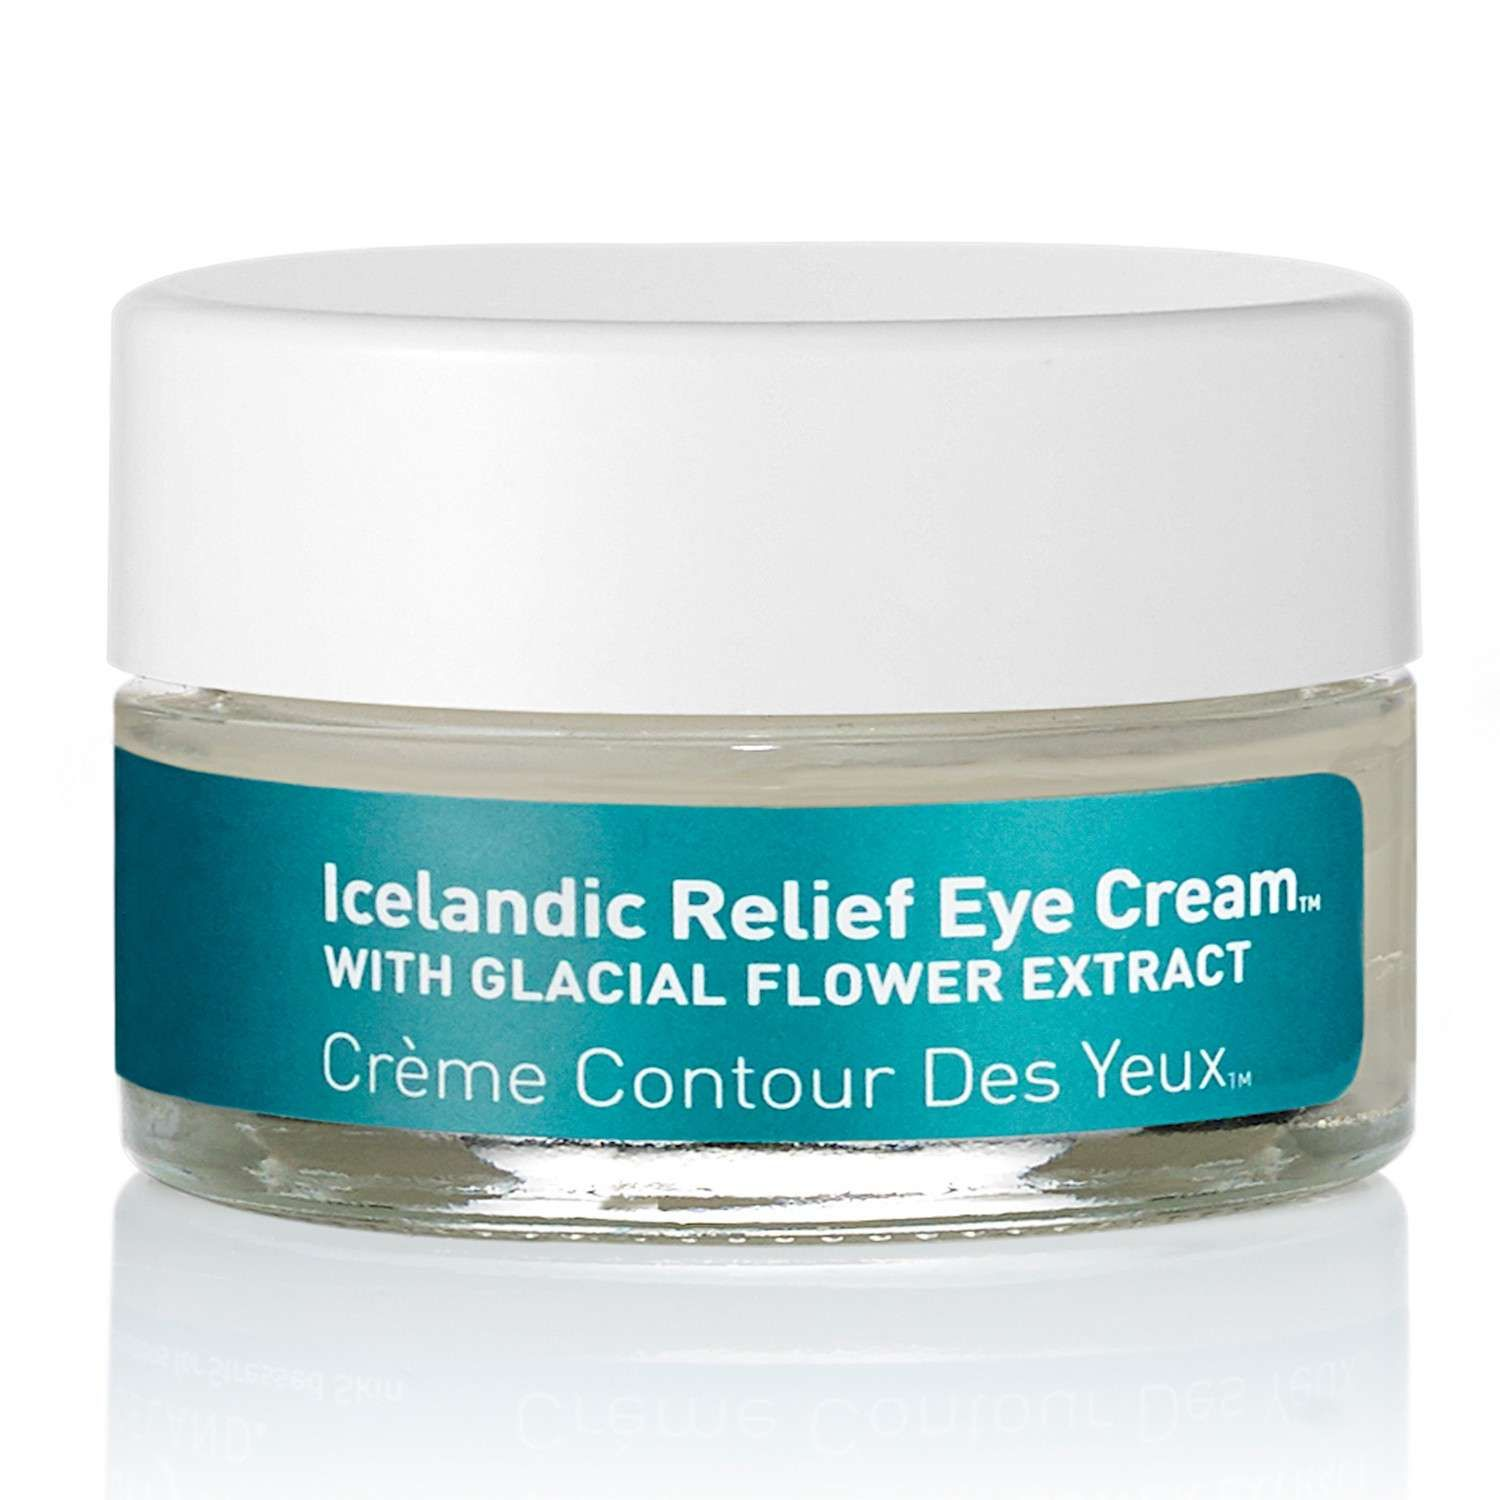 Skyn_ICELAND_Icelandic_Relief_Eye_Cream_049_oz__14_g